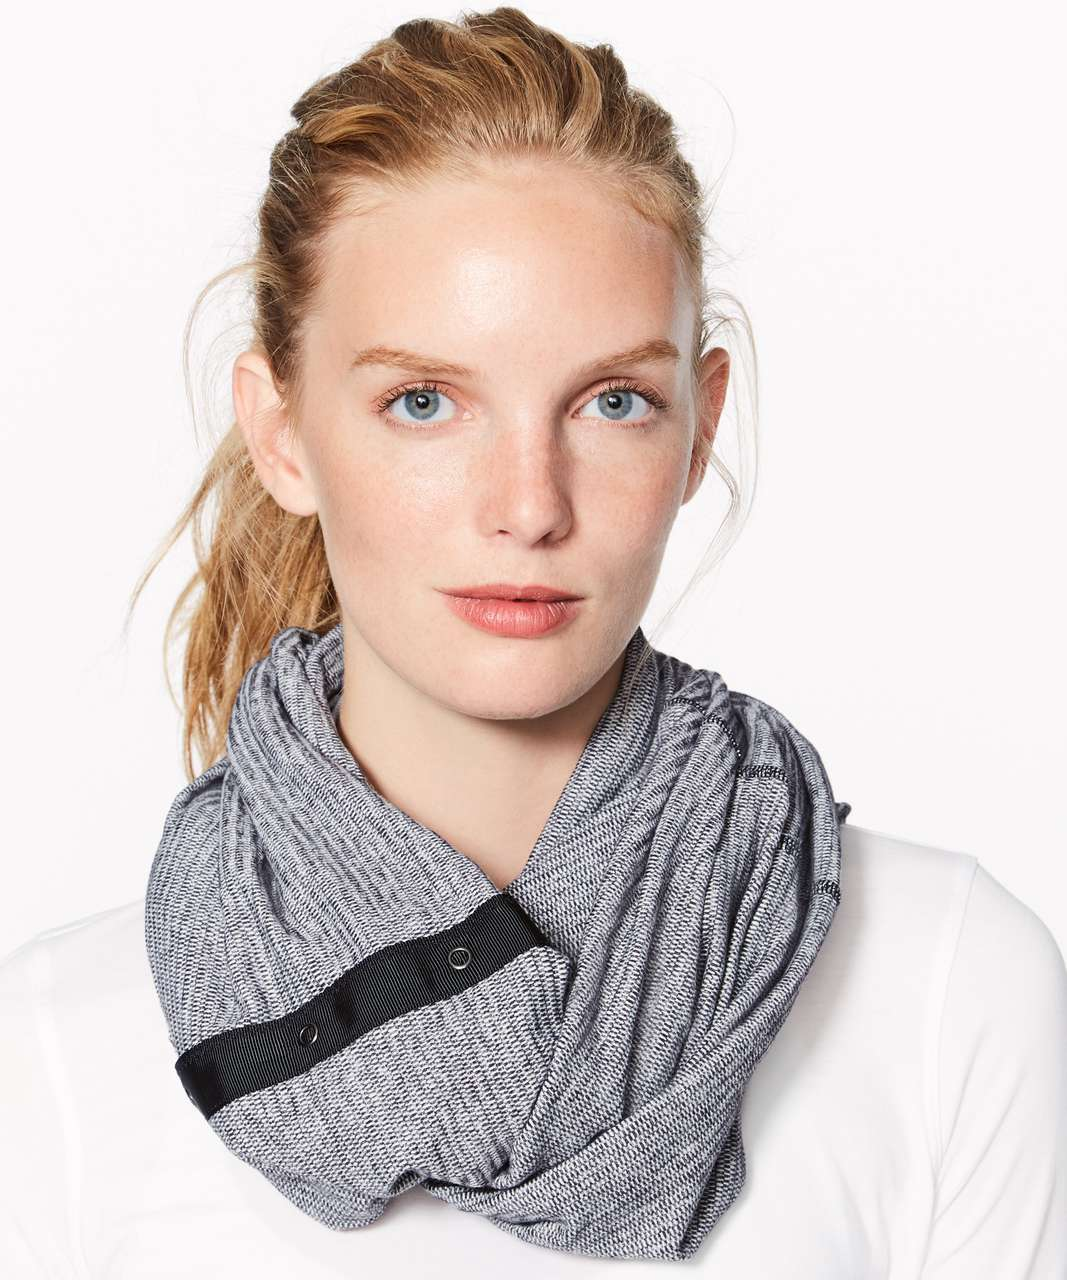 Lululemon Vinyasa Scarf (Rulu) - Mini Check Pique White Heathered Black